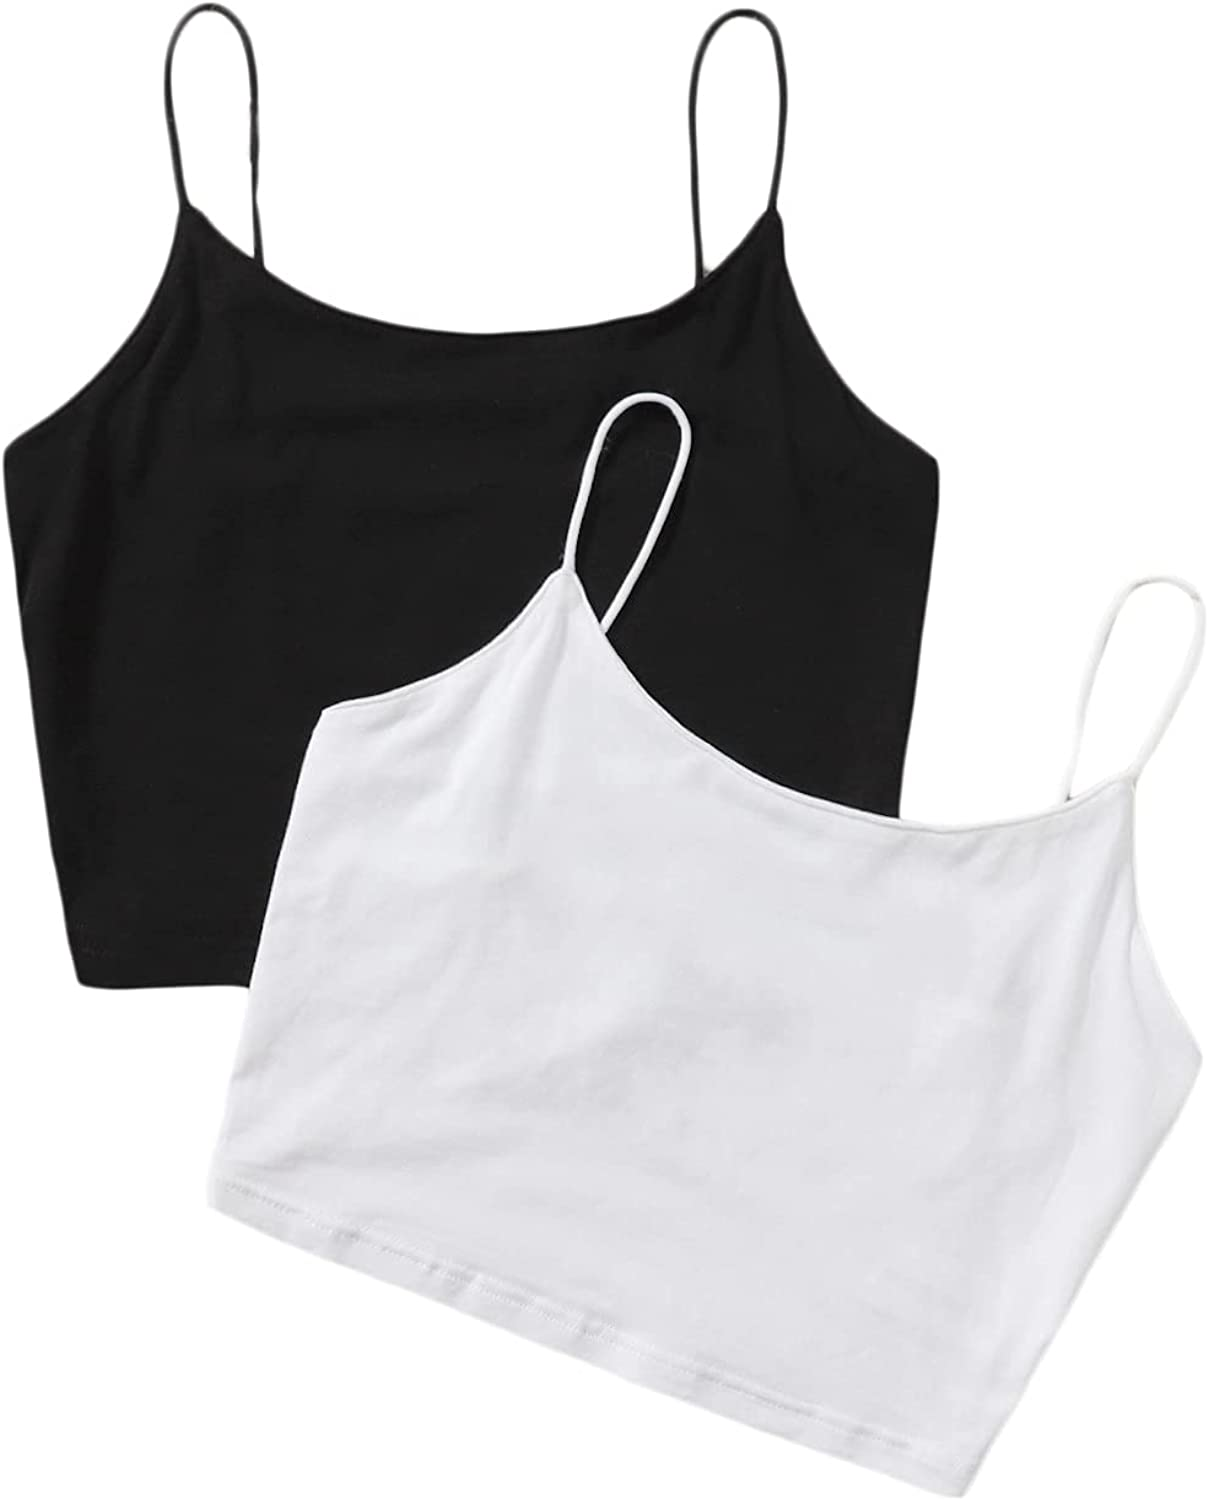 SheIn Women's 2pcs Basic Strappy Crop Cami Top Sleeveless Solid Camisole